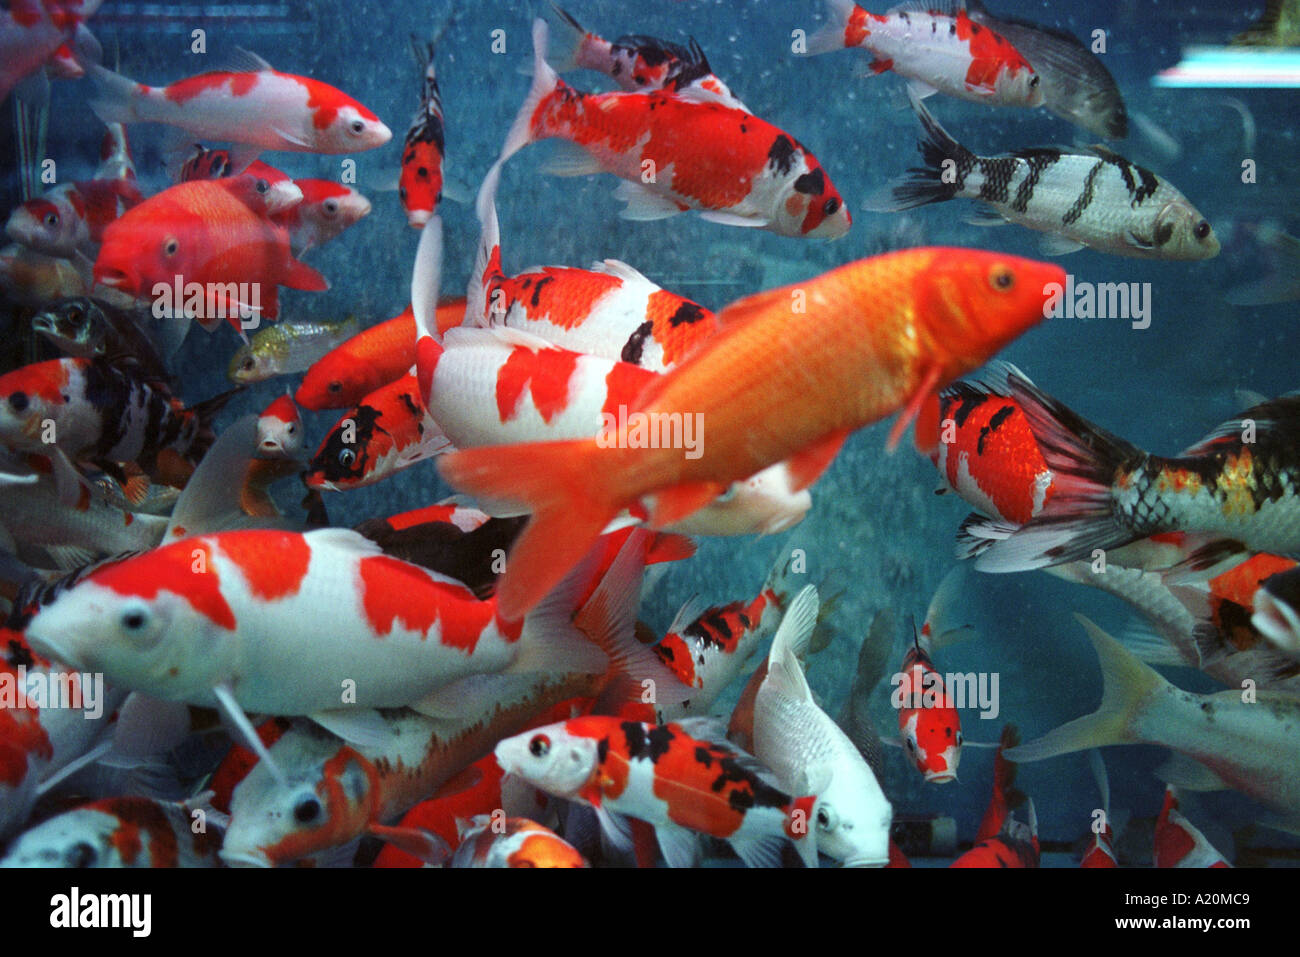 Related Keywords Suggestions For Koi Carp Fish